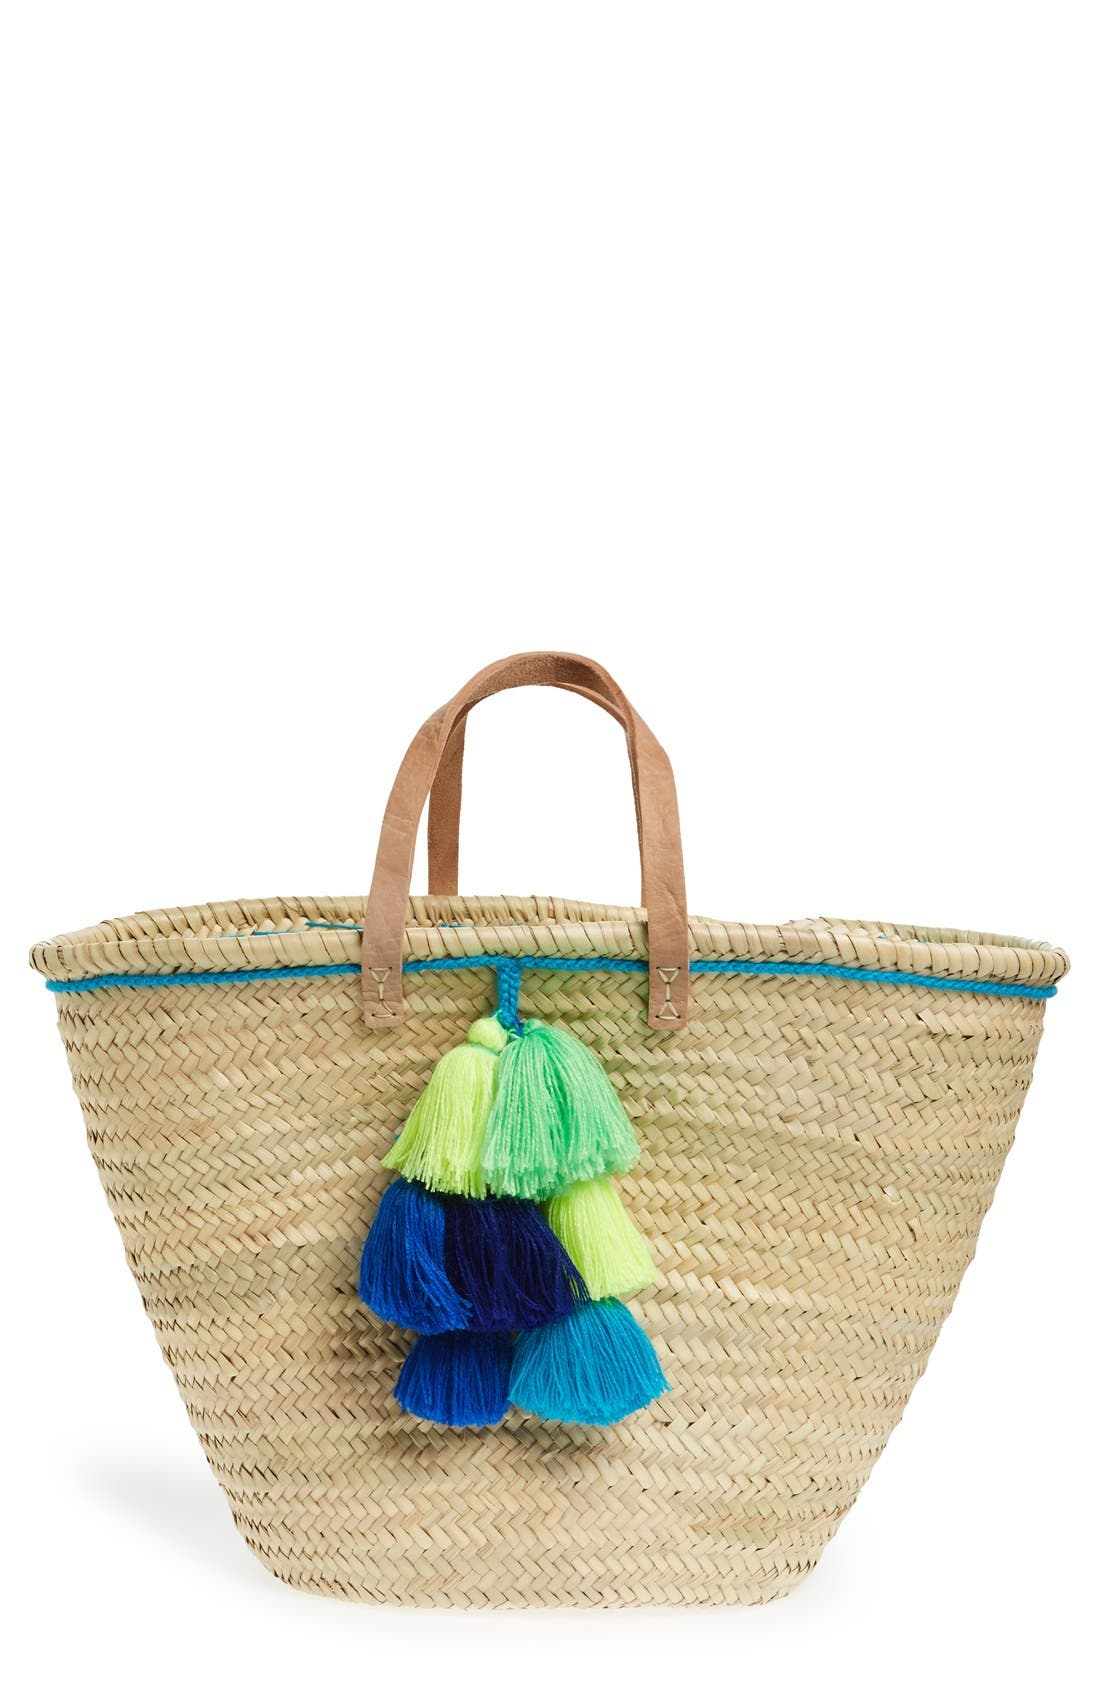 Main Image - House of Perna 'Remy' Woven Straw Tote